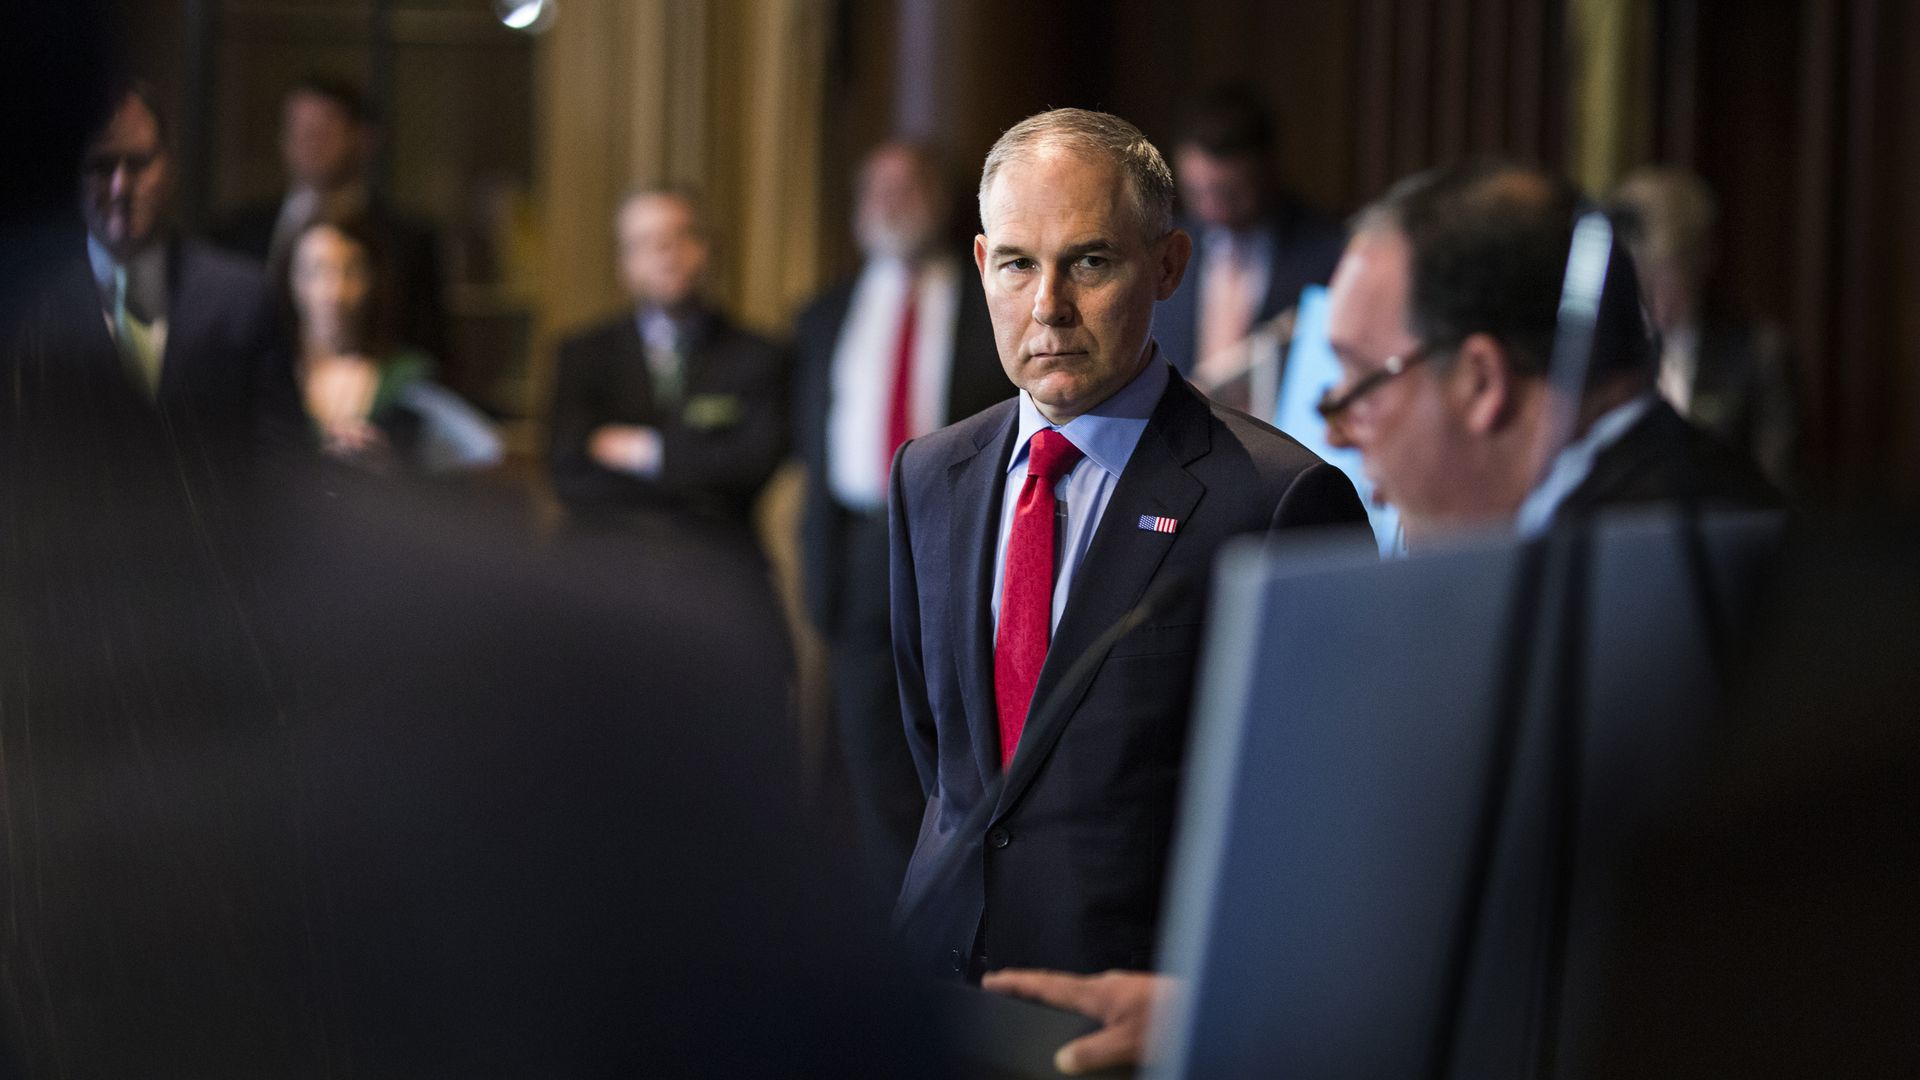 Scott Pruitt looks out the side of his eyes at a presentation.